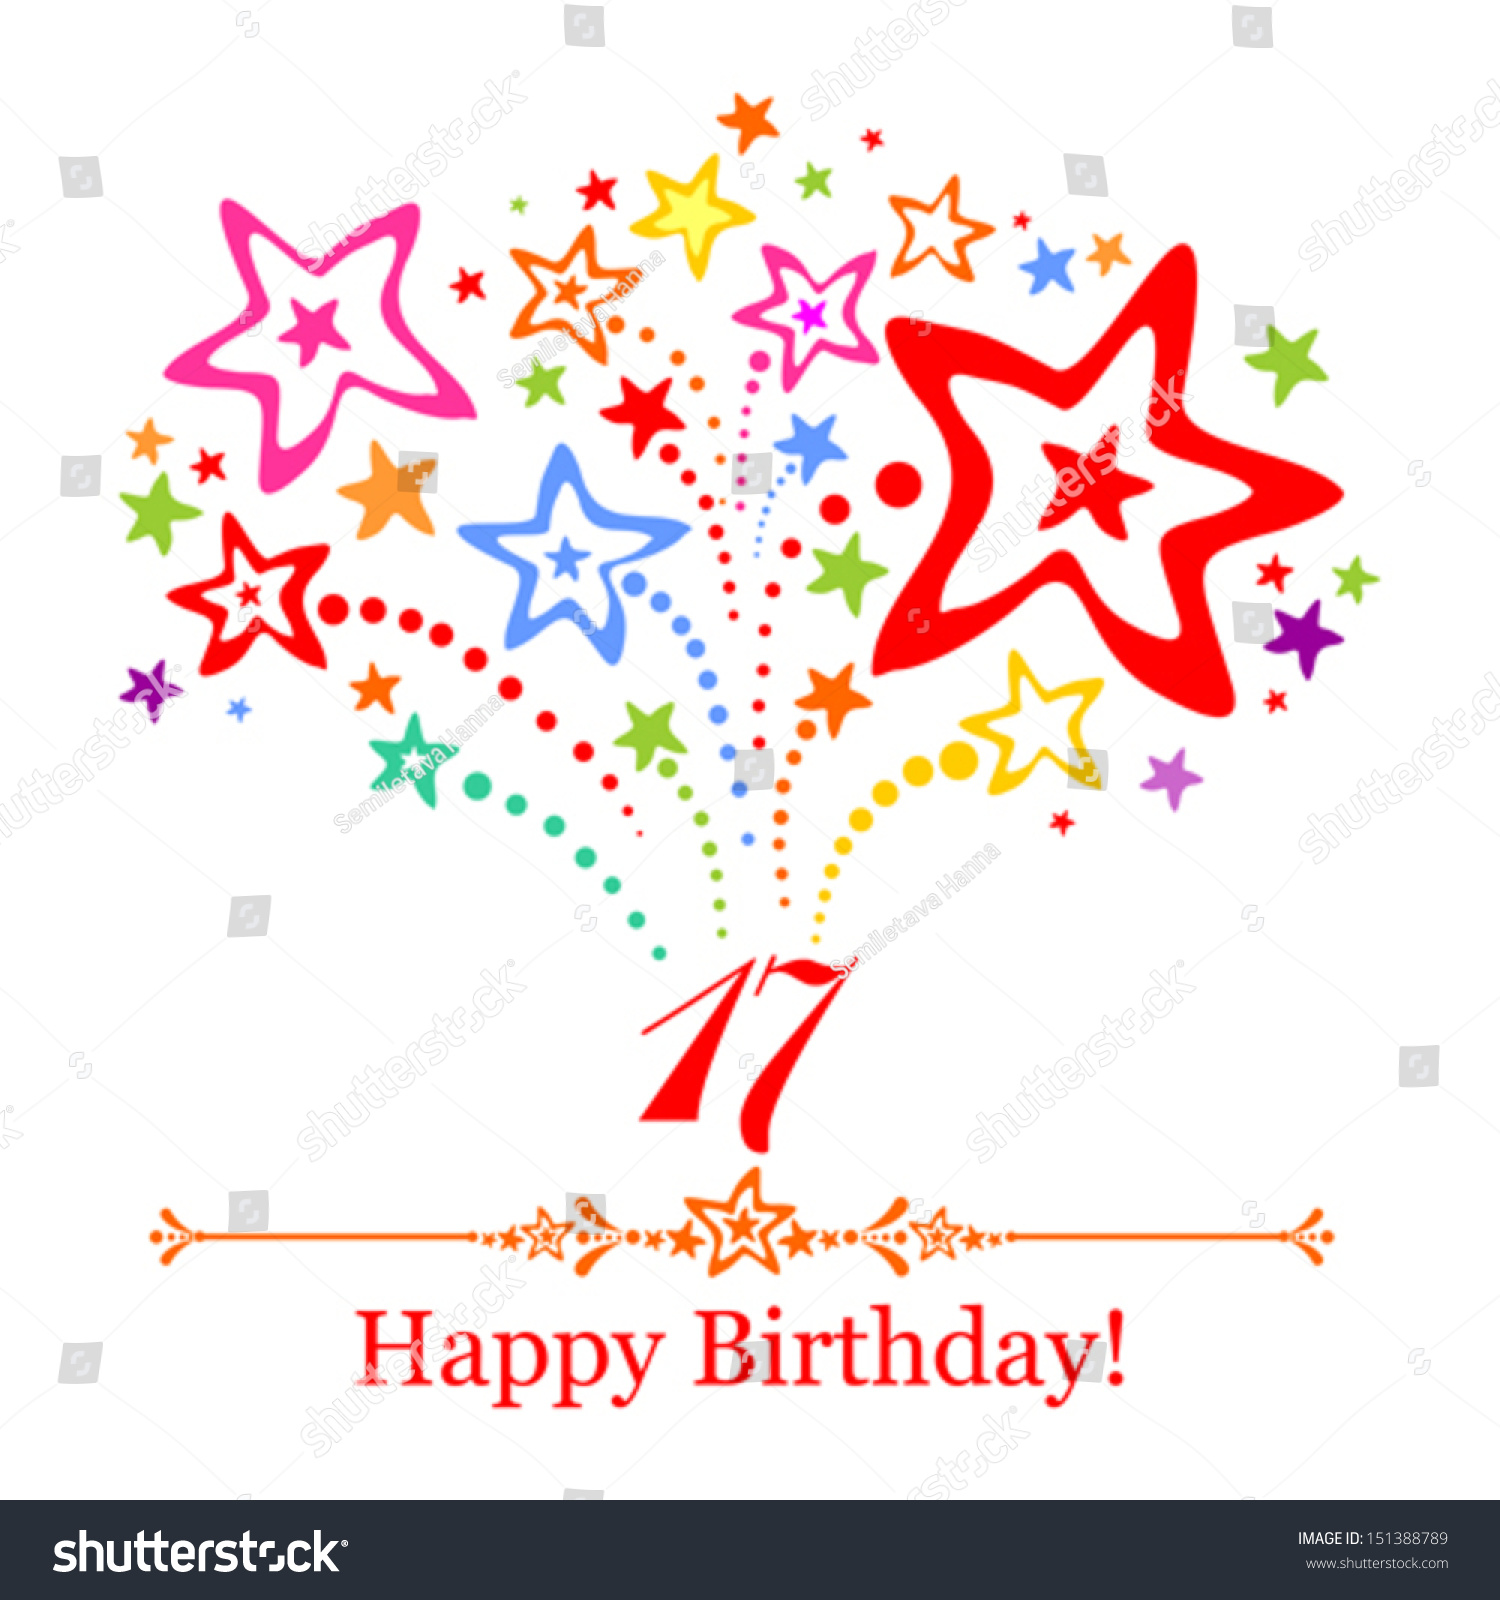 Happy Birthday Illustration Font ~ Happy birthday card celebration background number stock vector shutterstock